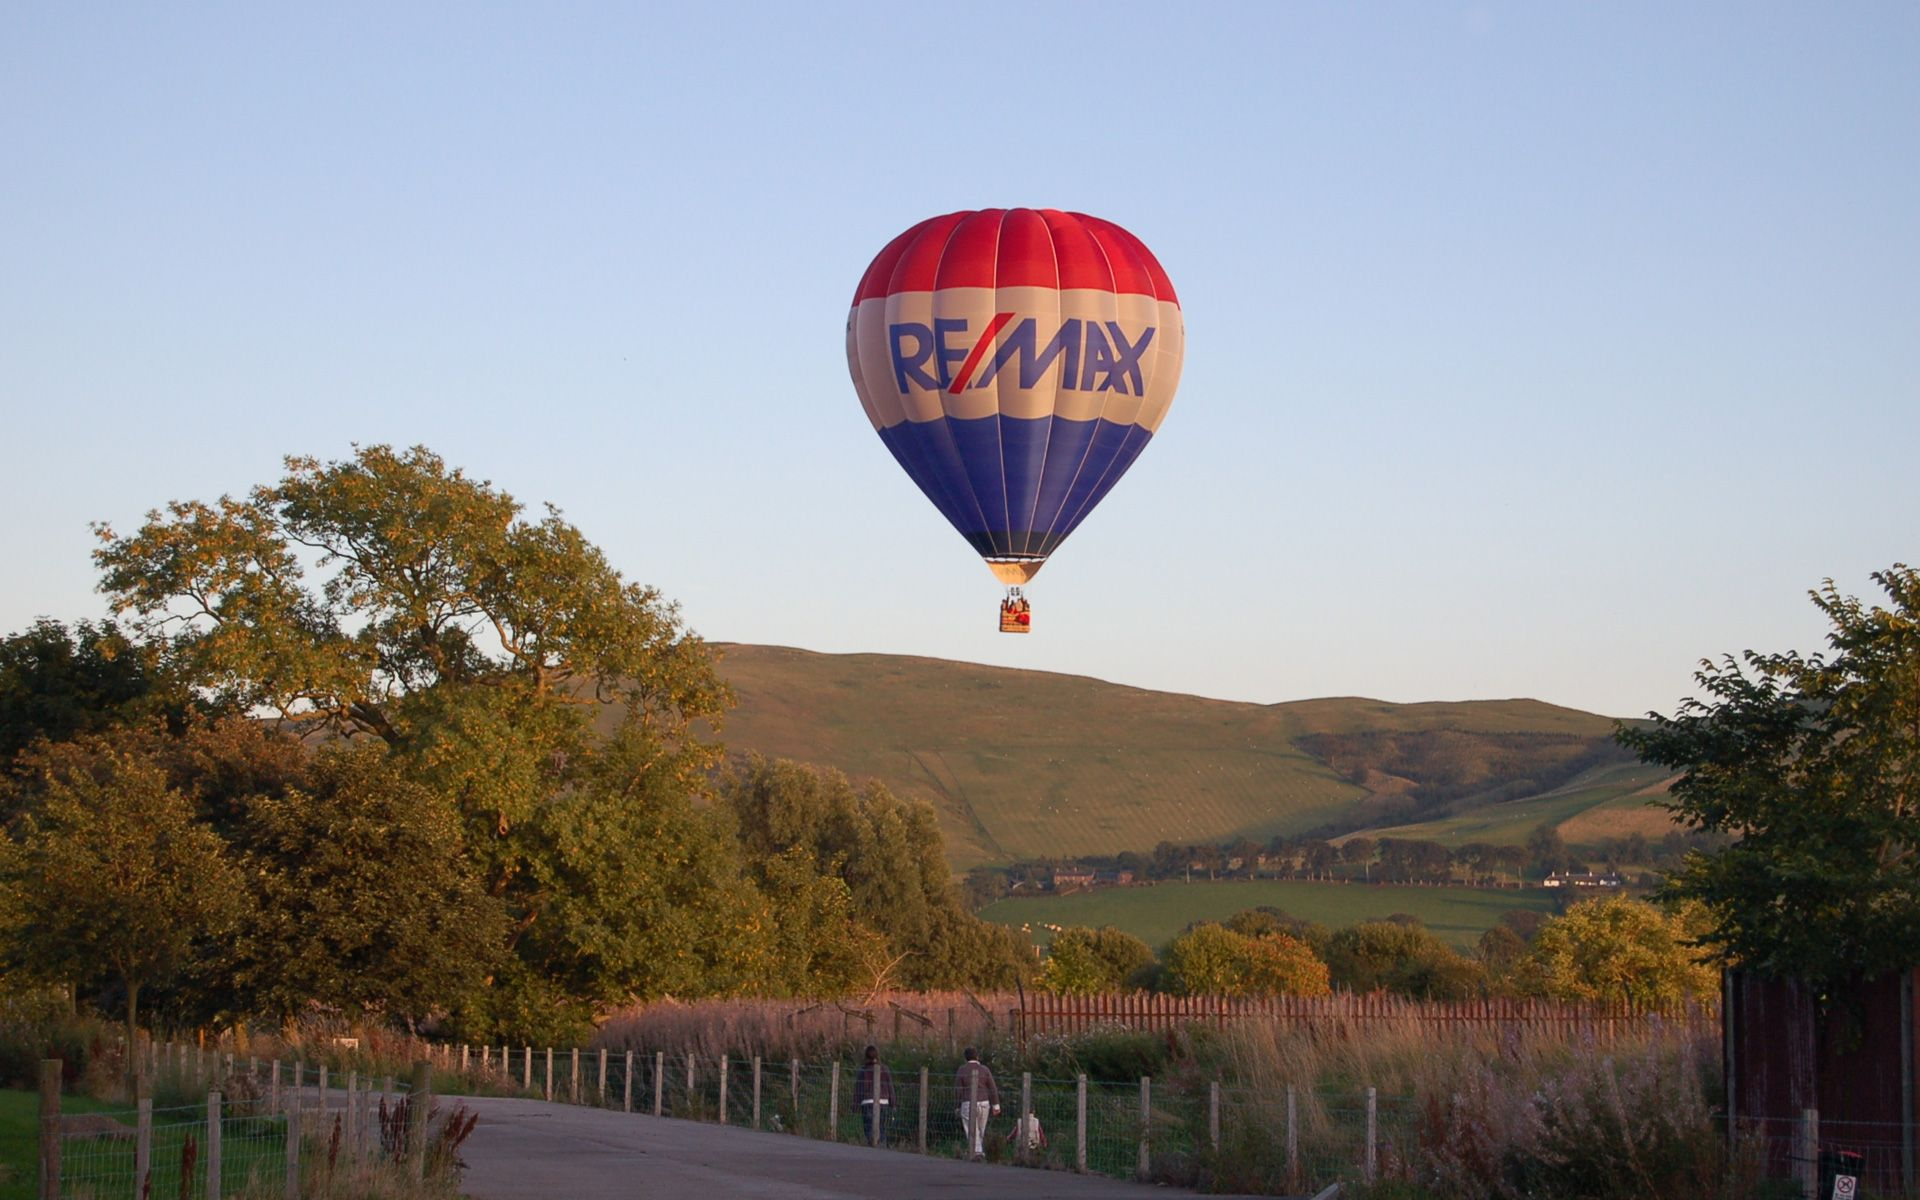 RE/MAX Estate Agents, Clydesdale & Tweeddale